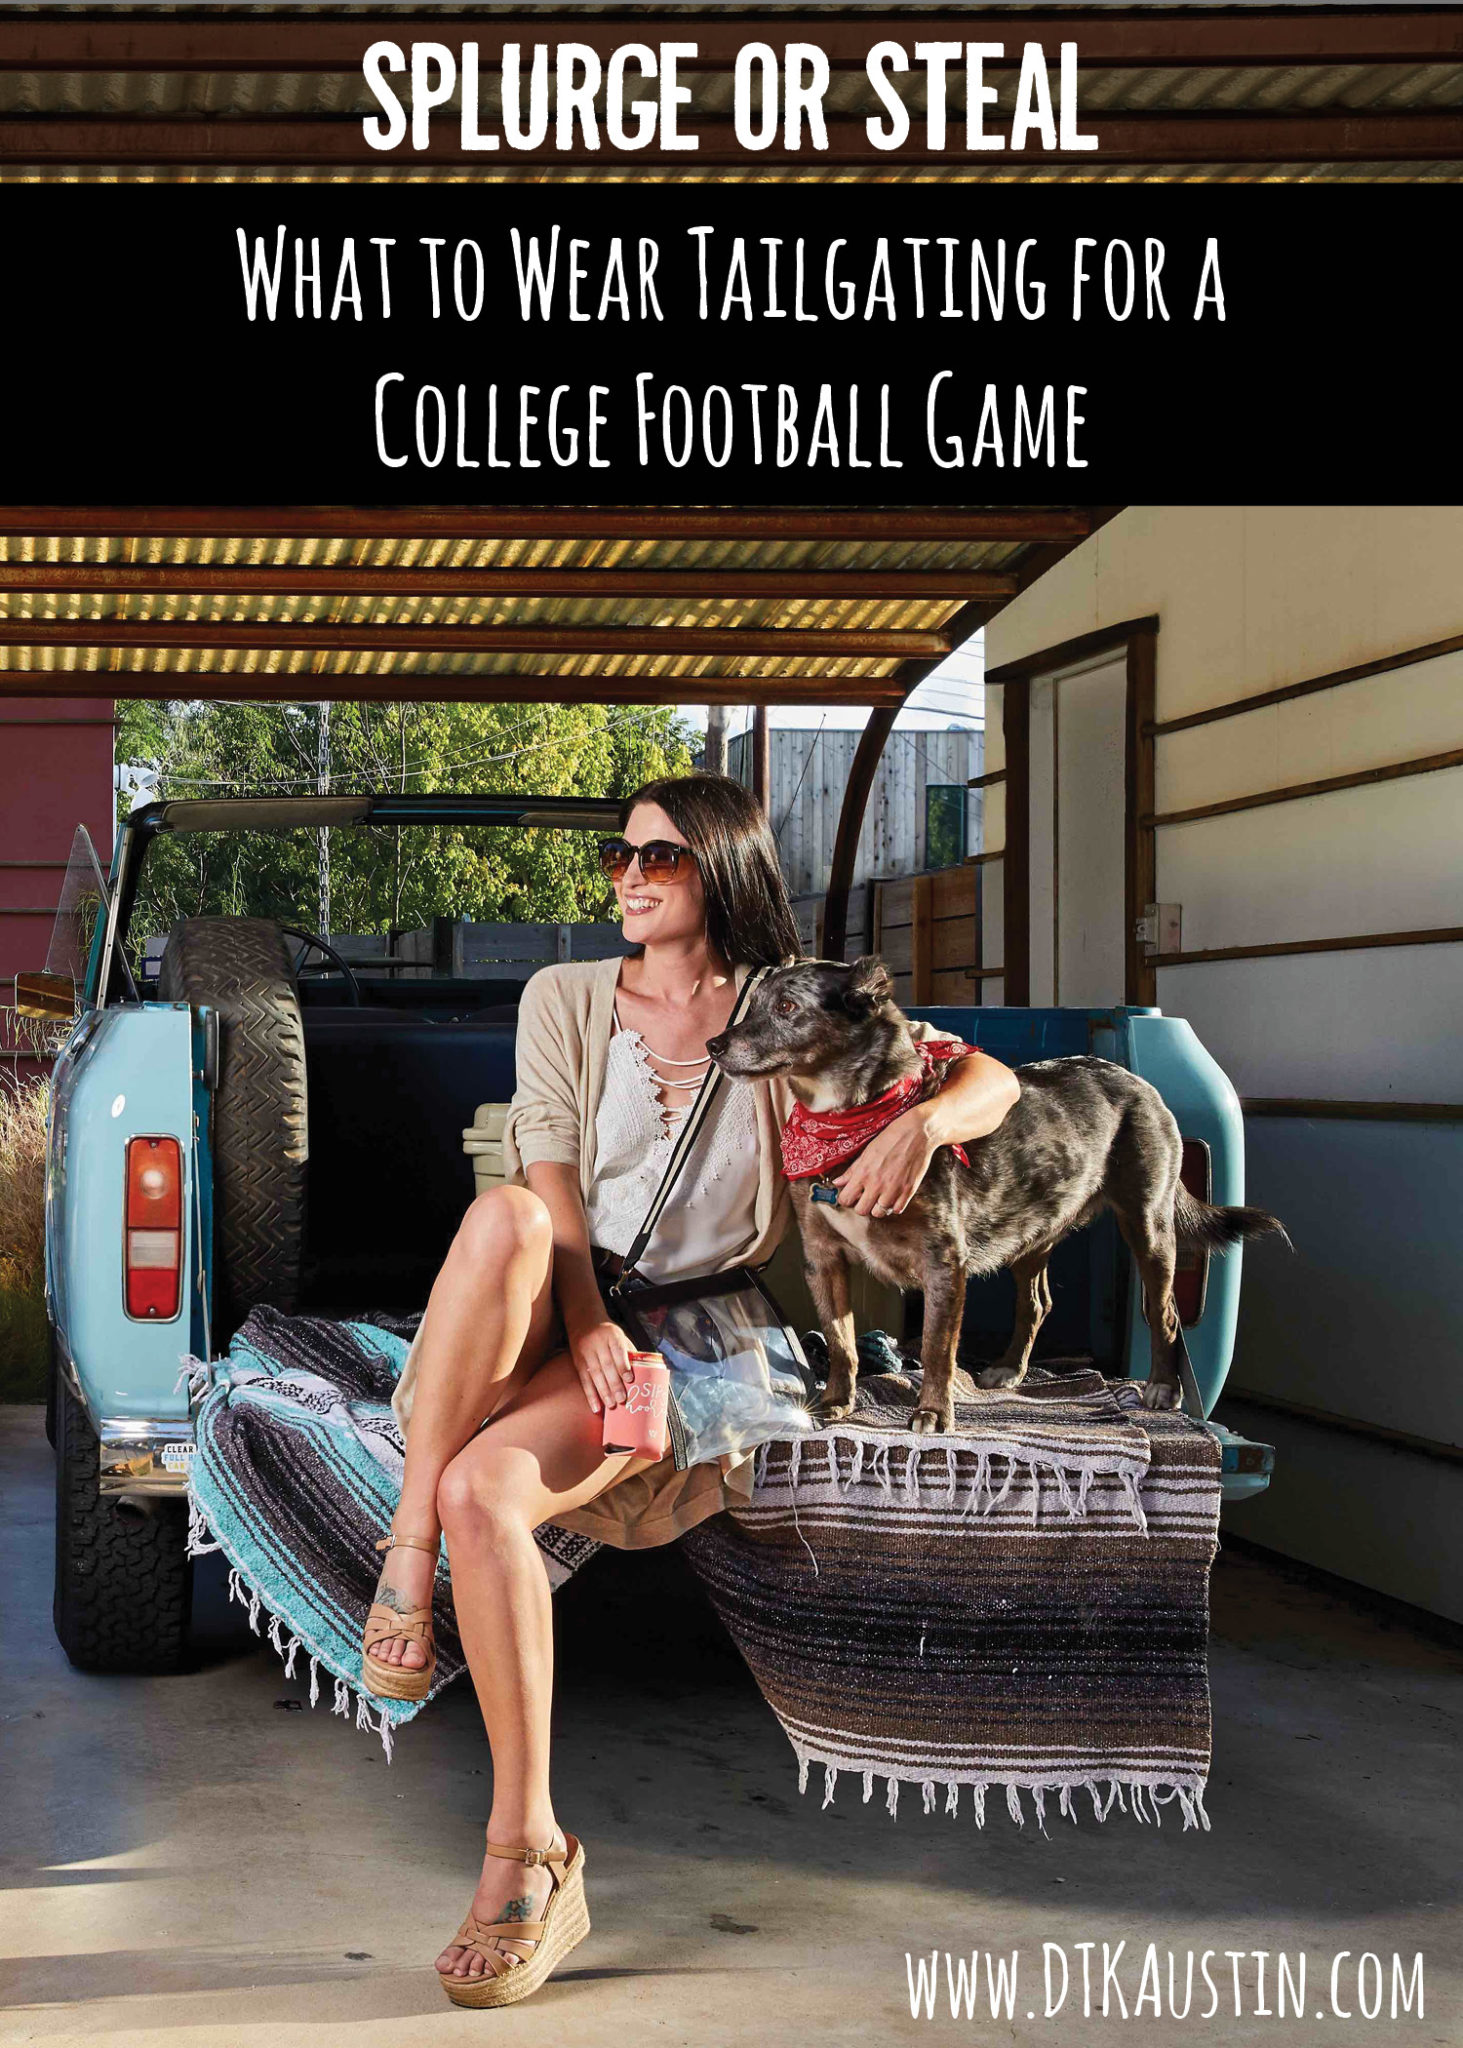 DTKAustin shares Splurge or Steal options for what to wear Tailgating at a College Football Game. | high end style | affordable game day fashion || DTK Austin #splurgeorsteal #fashion #style #womensoutfits #gamedaylooks #dtkaustin - {Splurge or Steal - Tailgating Outfit} featured by popular Austin fashion blogger Dressed to Kill